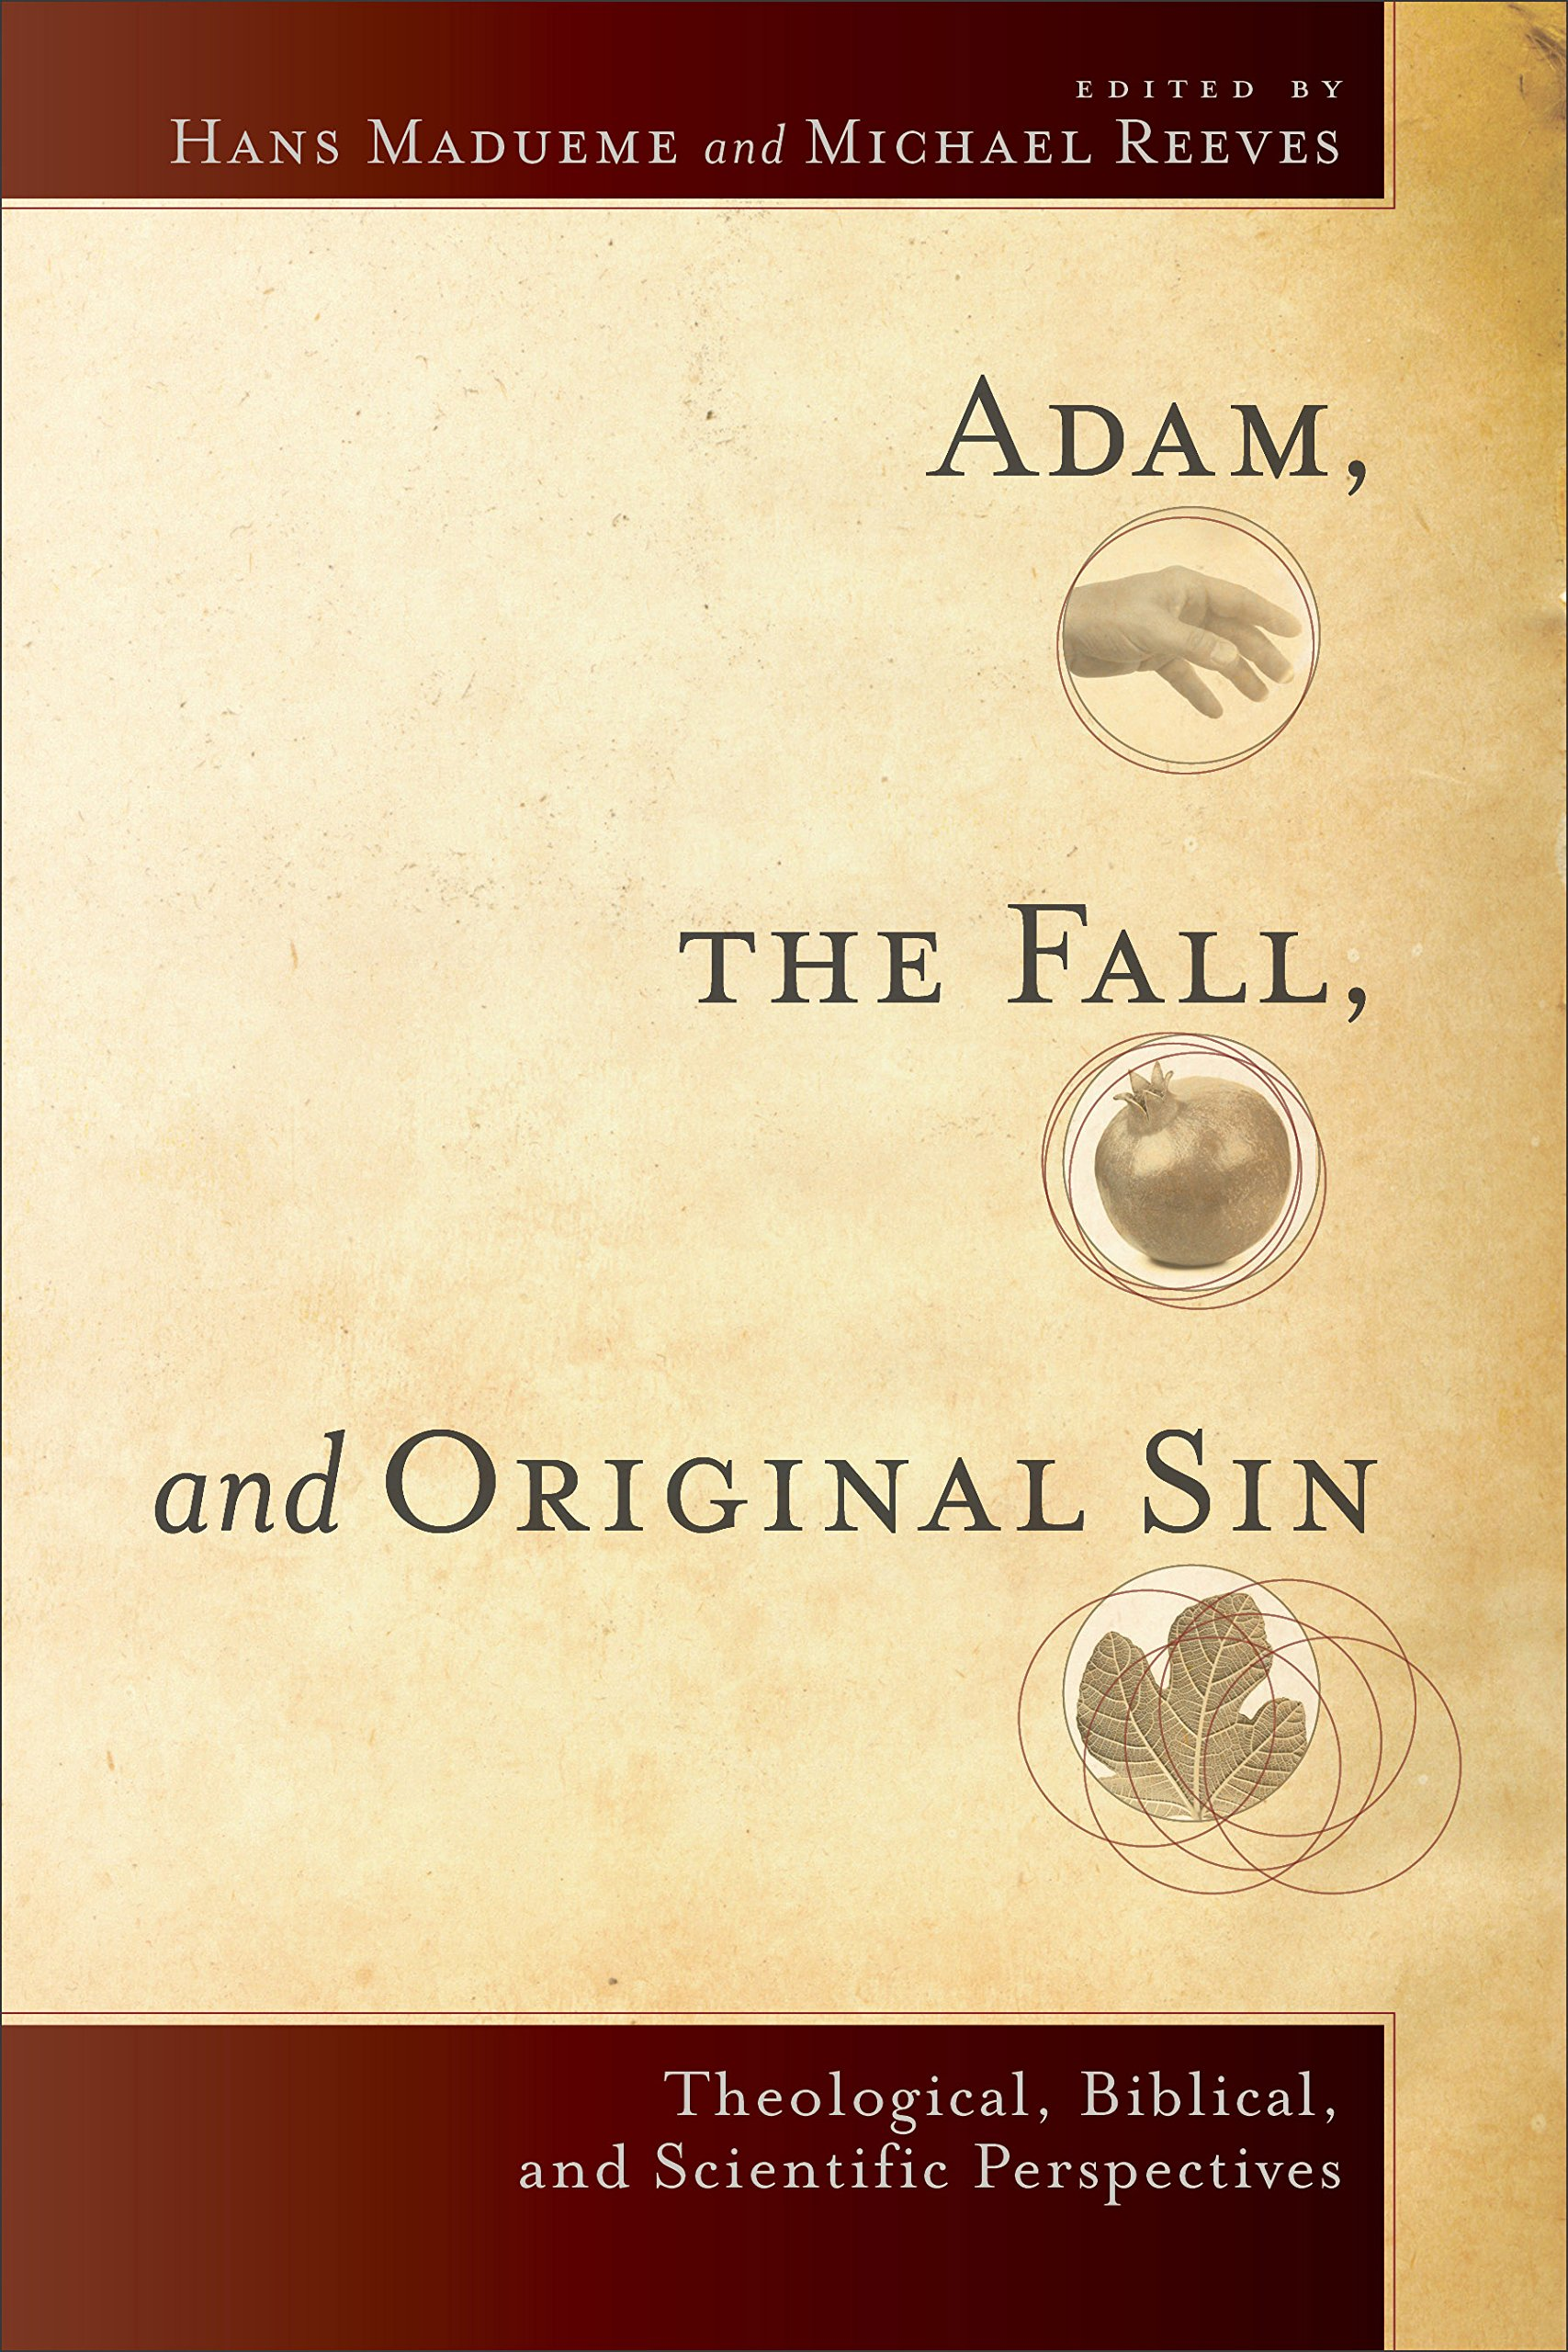 Adam, The Fall, And Original Sin: Theological, Biblical, And Scientific  Perspectives: Hans Madueme, Michael Reeves: 0884286565152: Amazon: Books